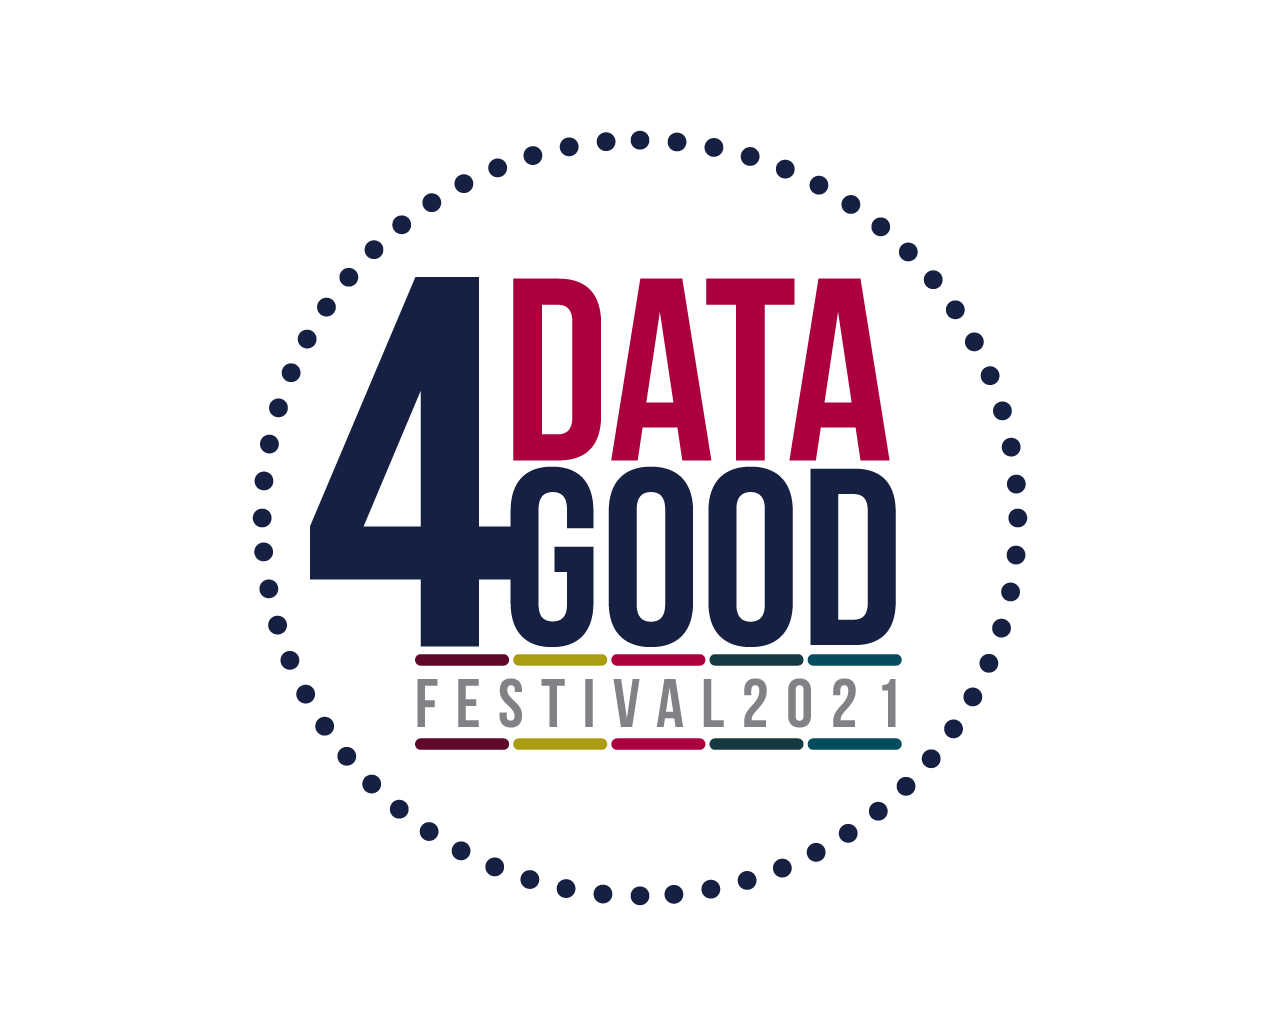 Data4Good festival 2021 logo